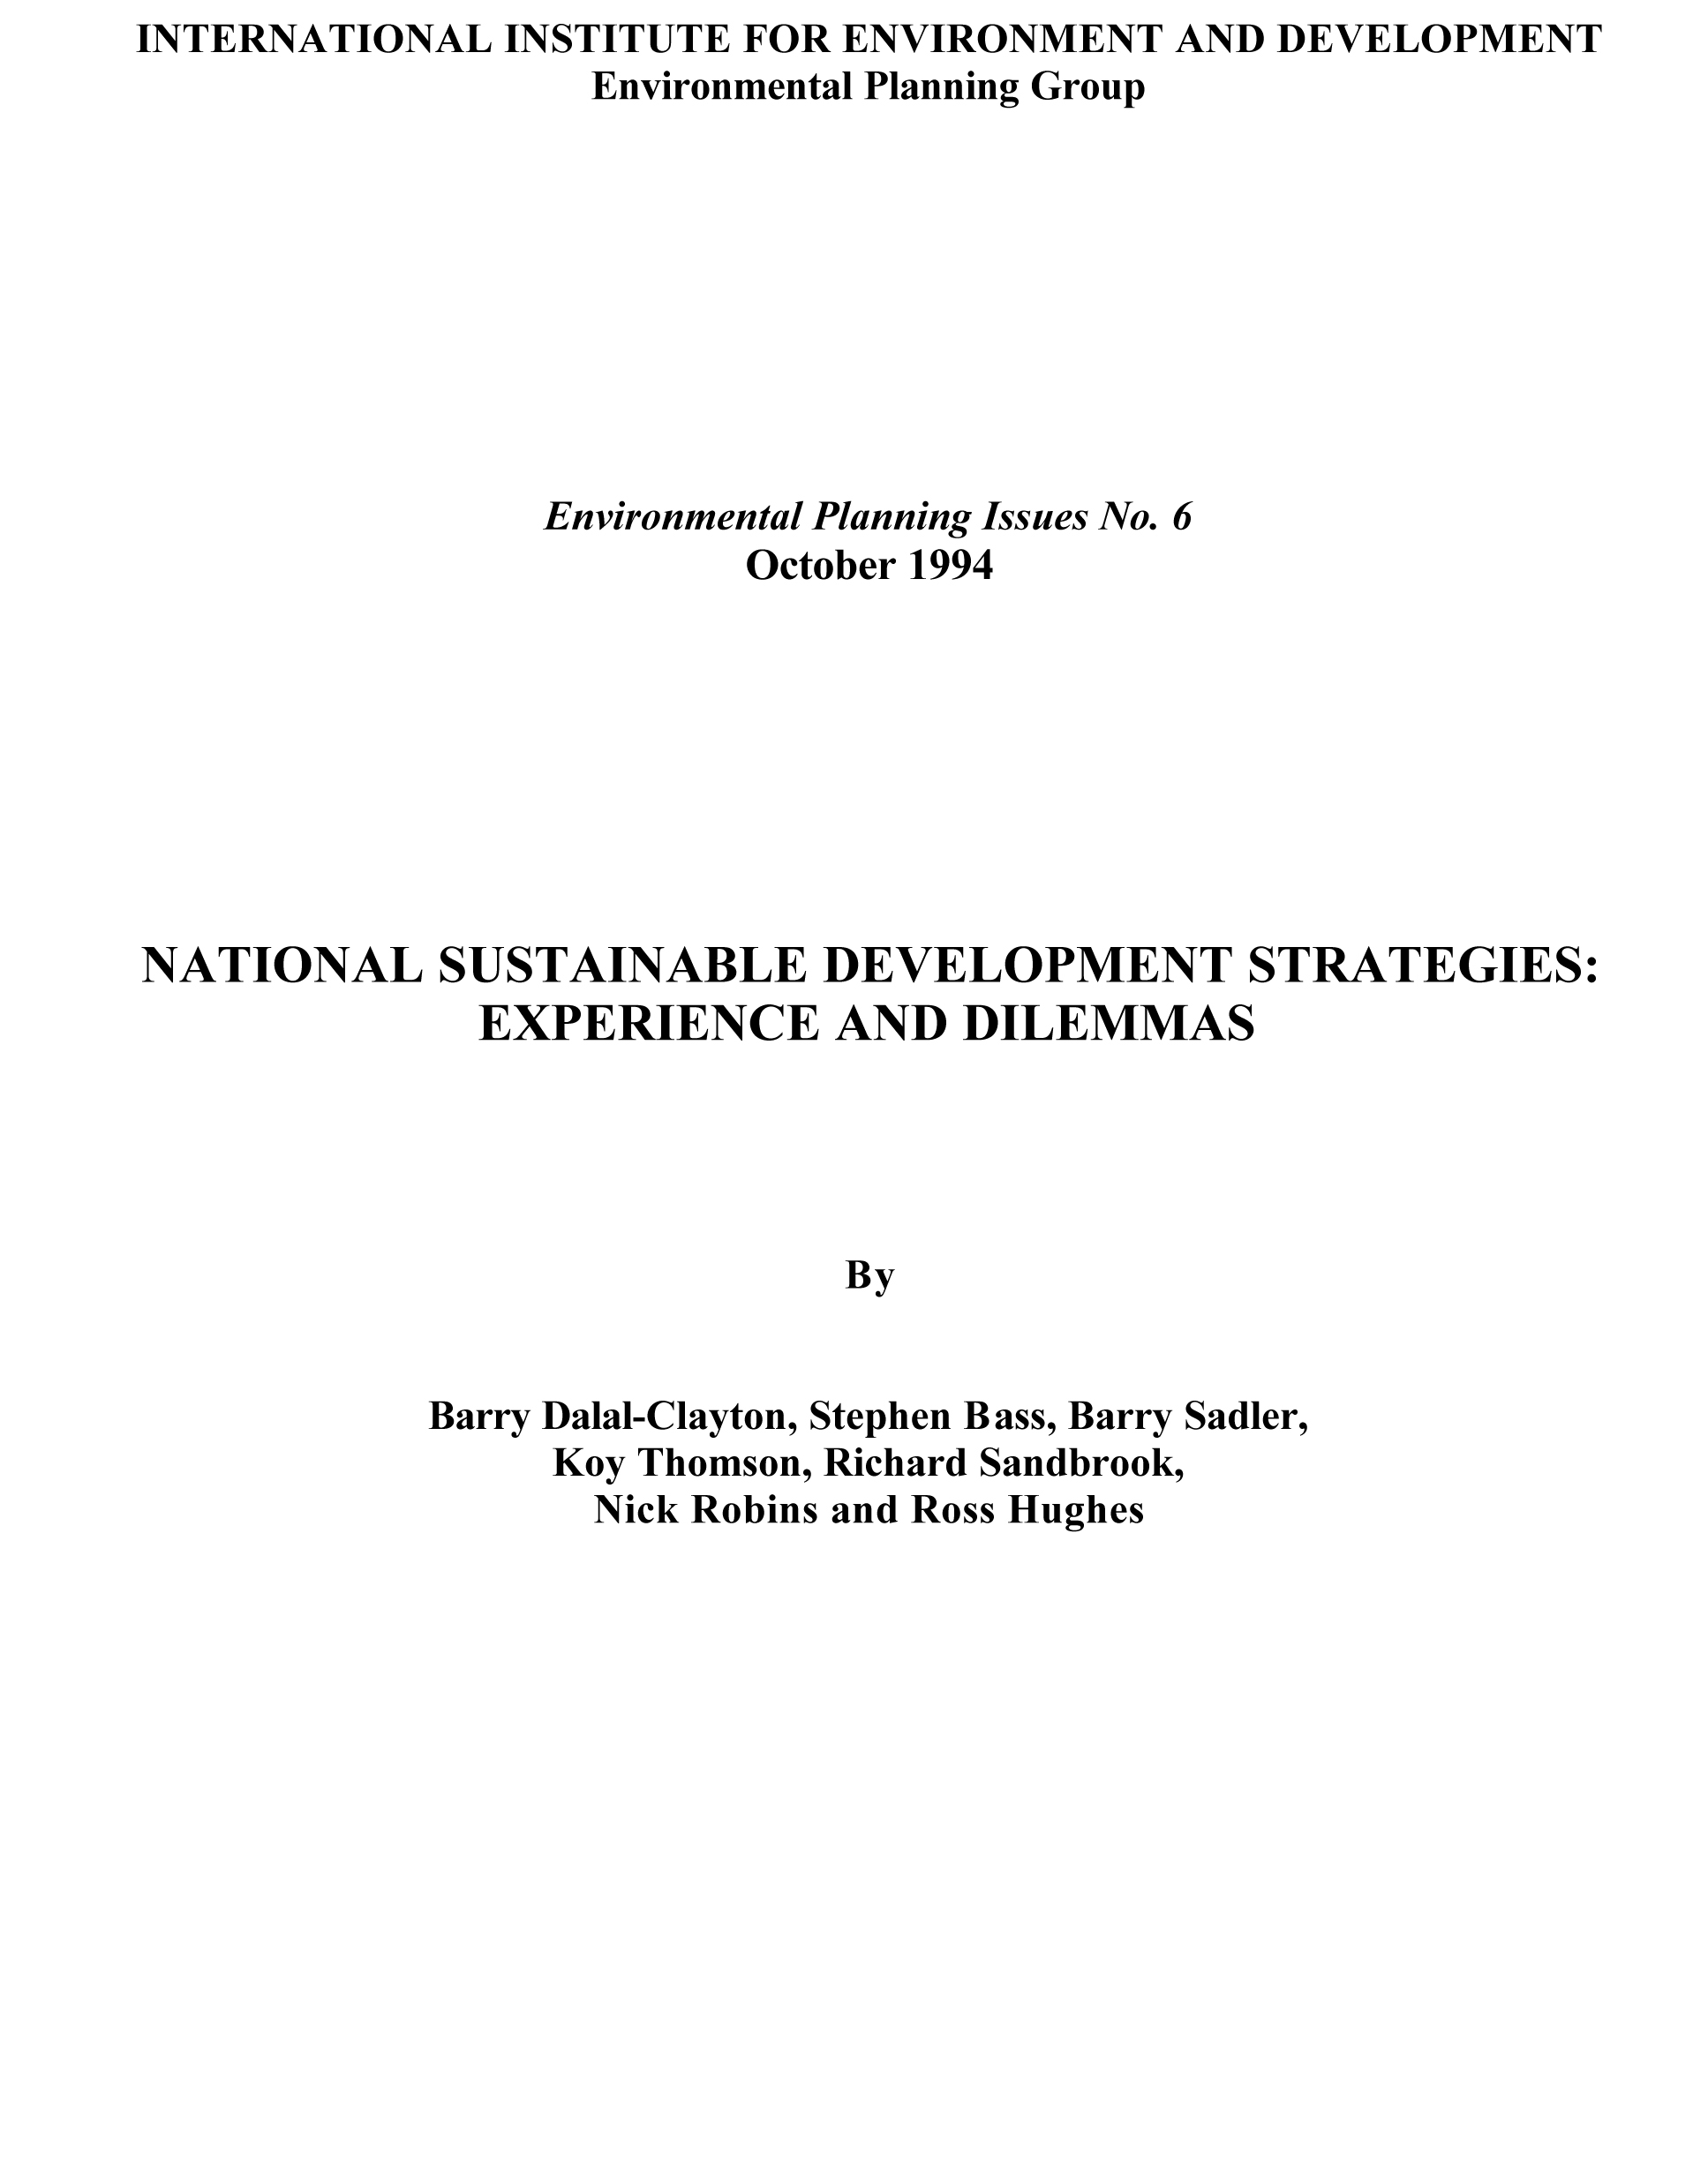 National SD Strategies-1